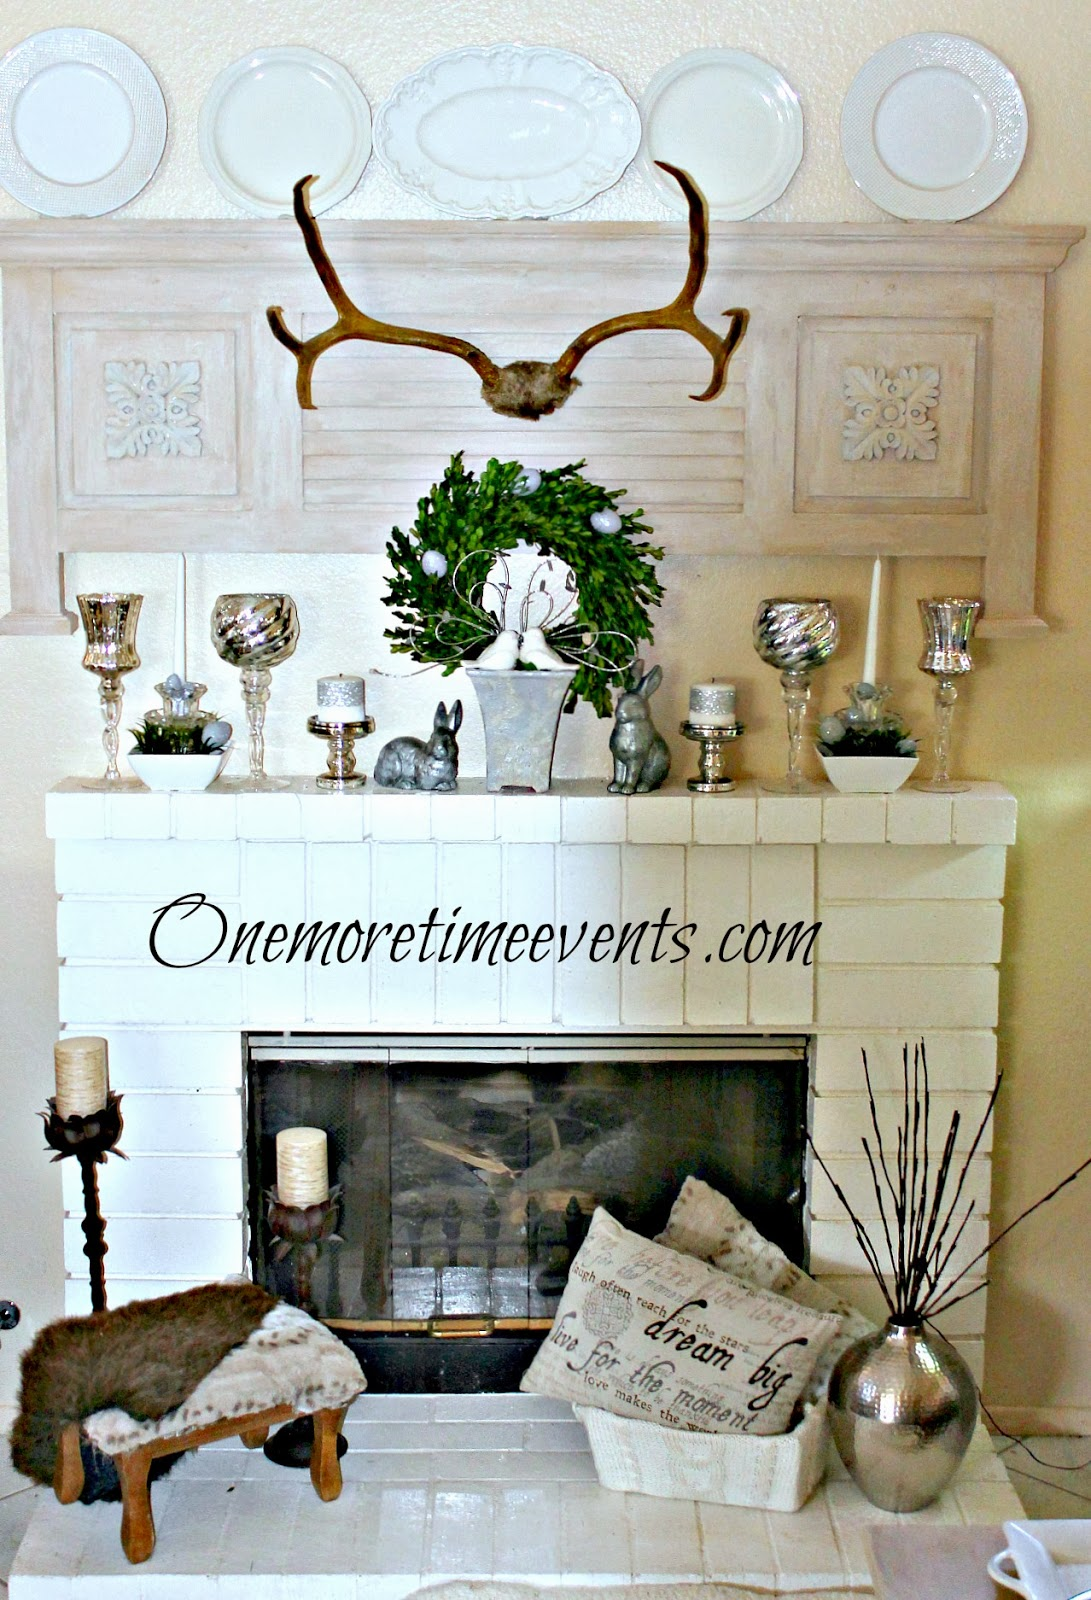 Fireplace decorated for Spring at One More Time Events.com